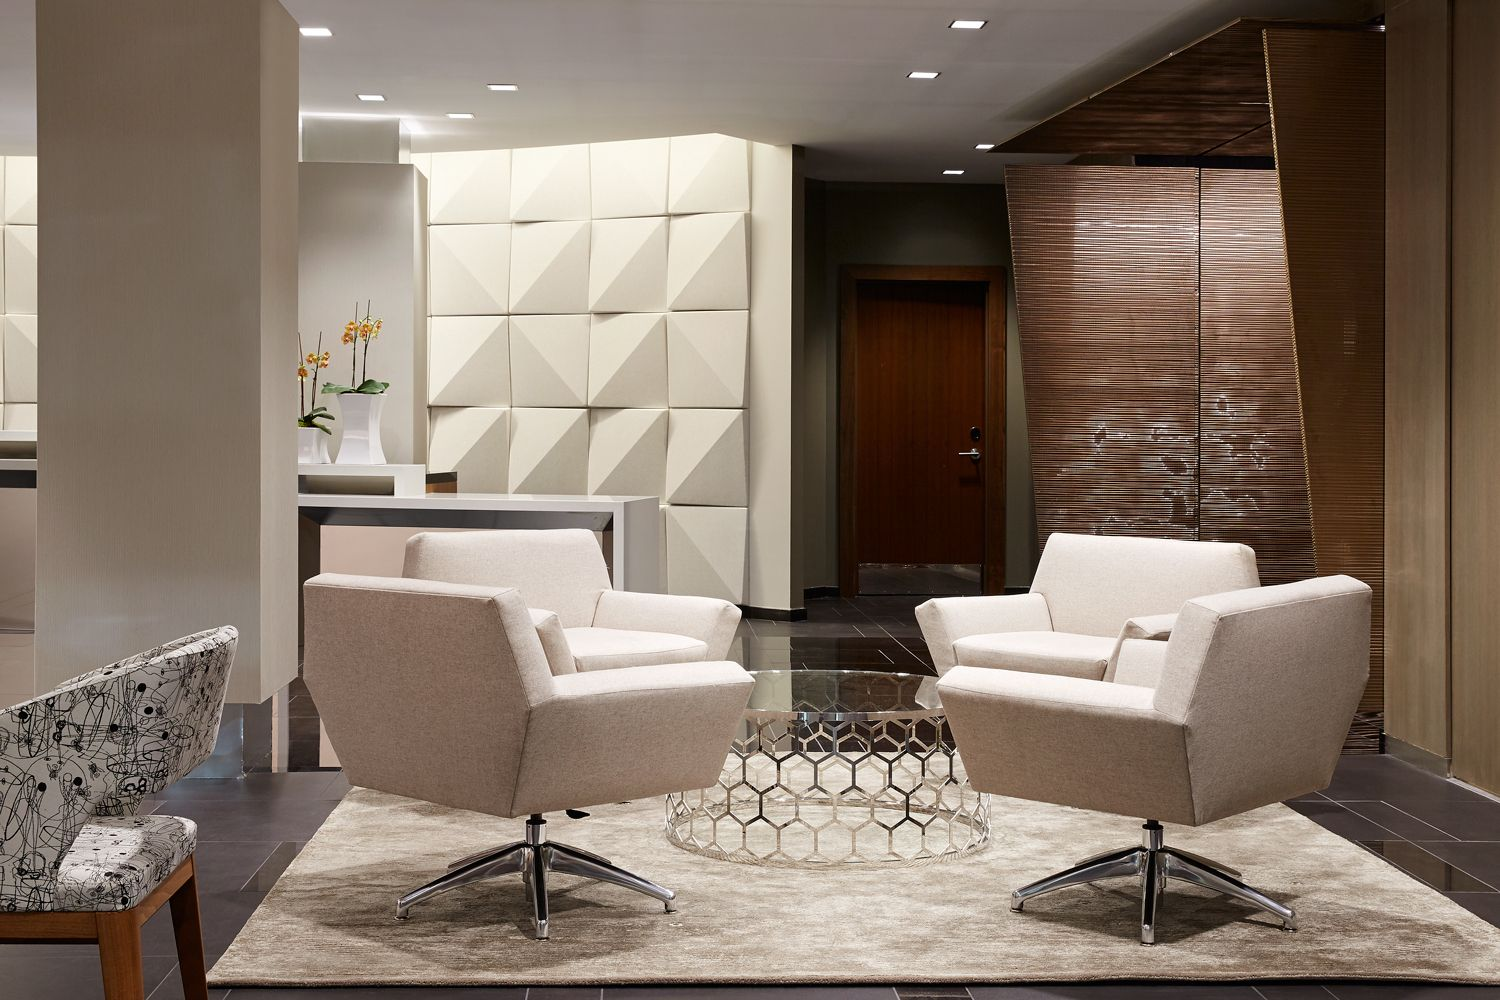 The godfrey in the downtown crossing nabe is hoping to catch your eye with ultra modern interiors swish in room technology and an italian inspired lobby